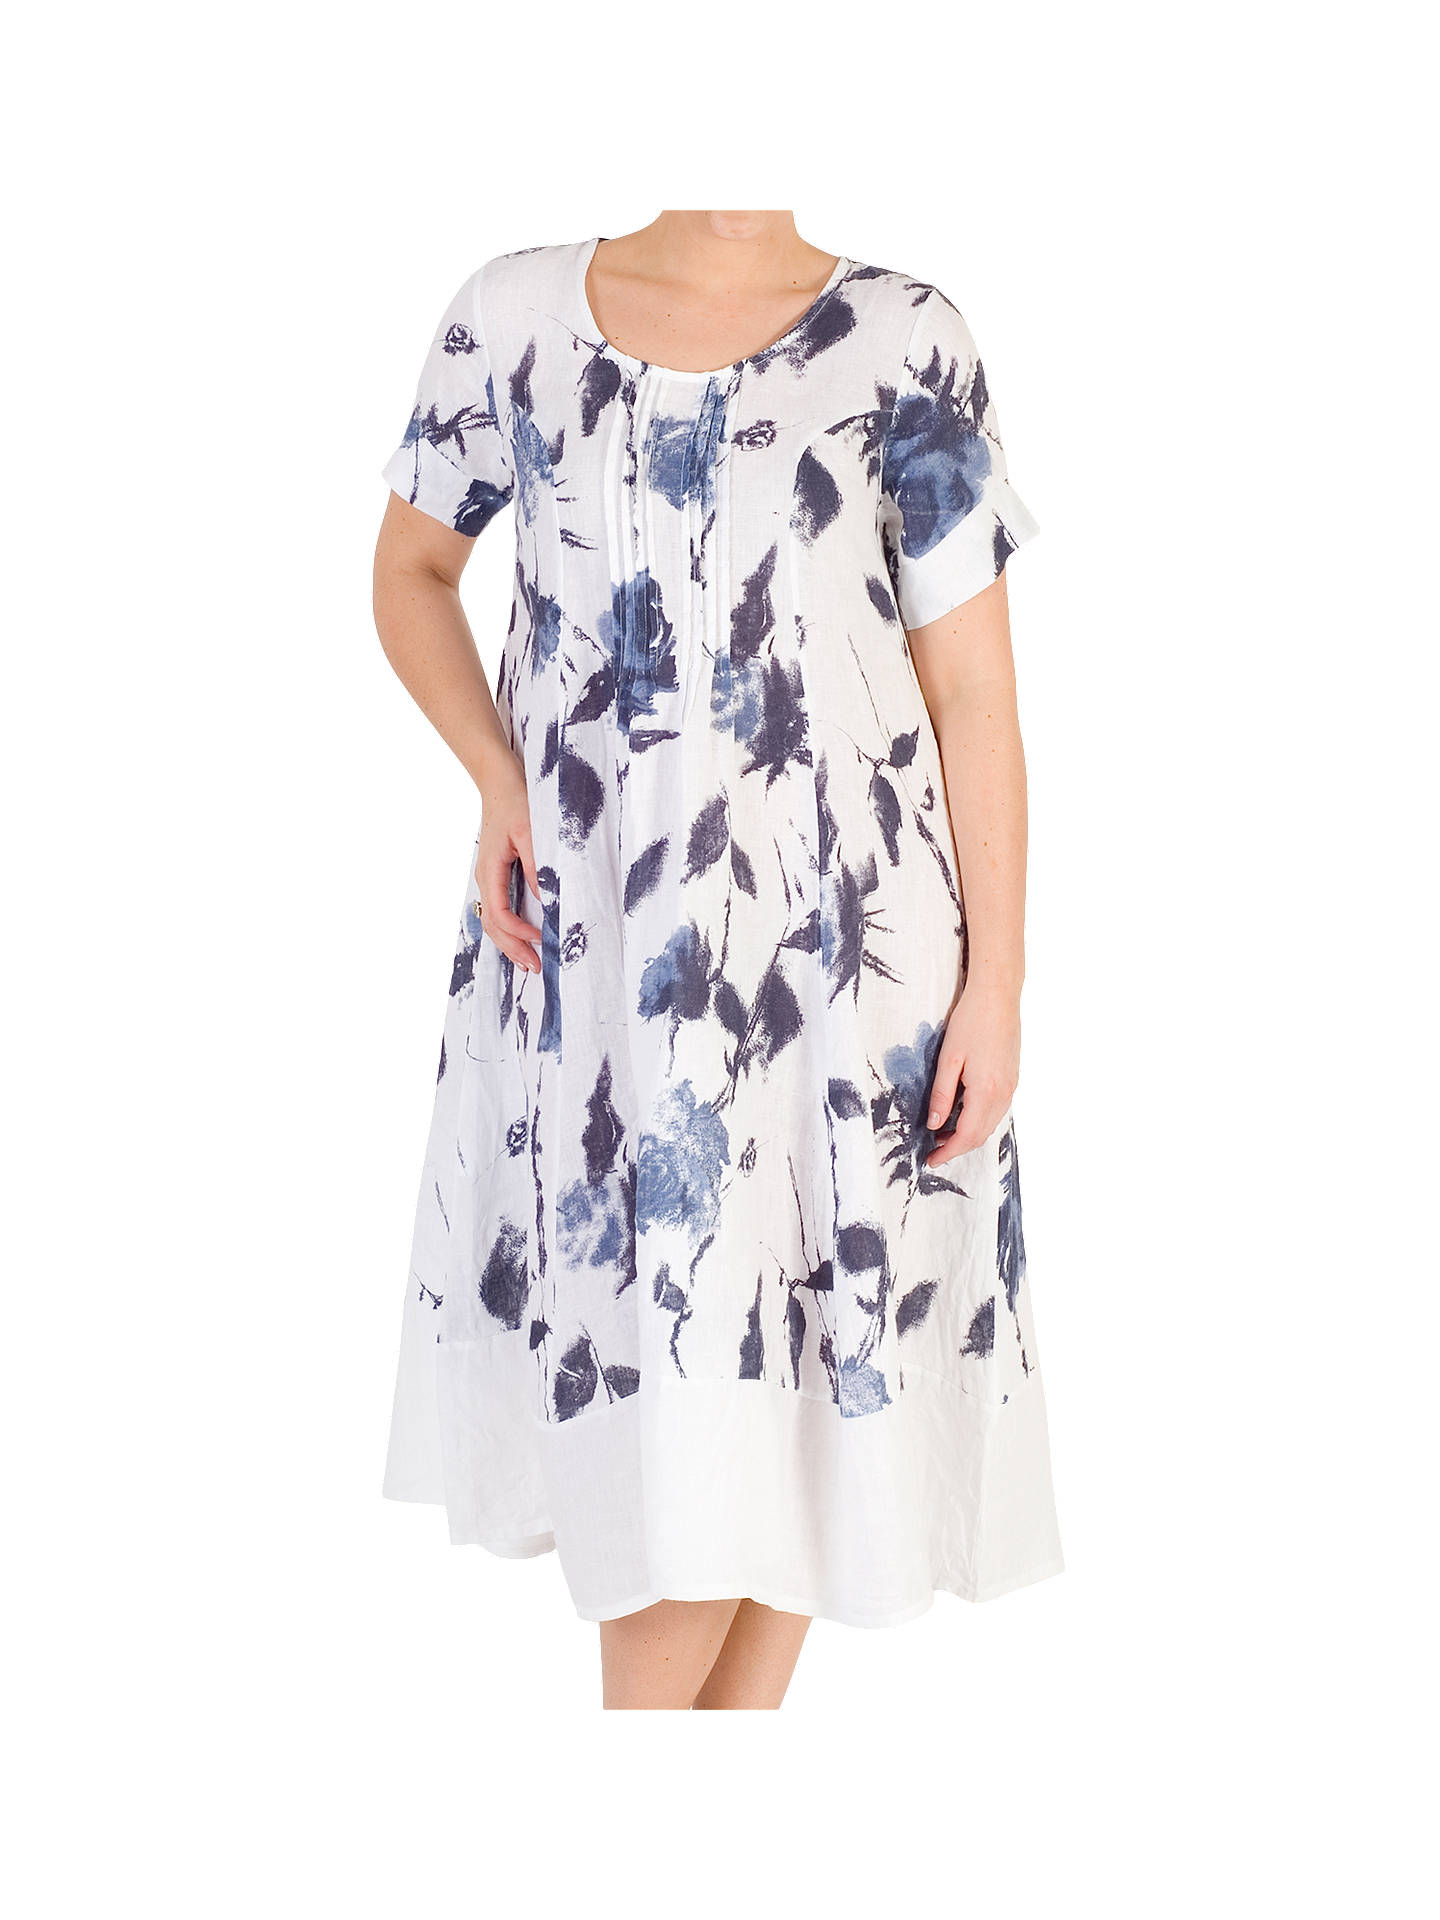 0f7f03b667 Buy Chesca Floral Print Linen Dress